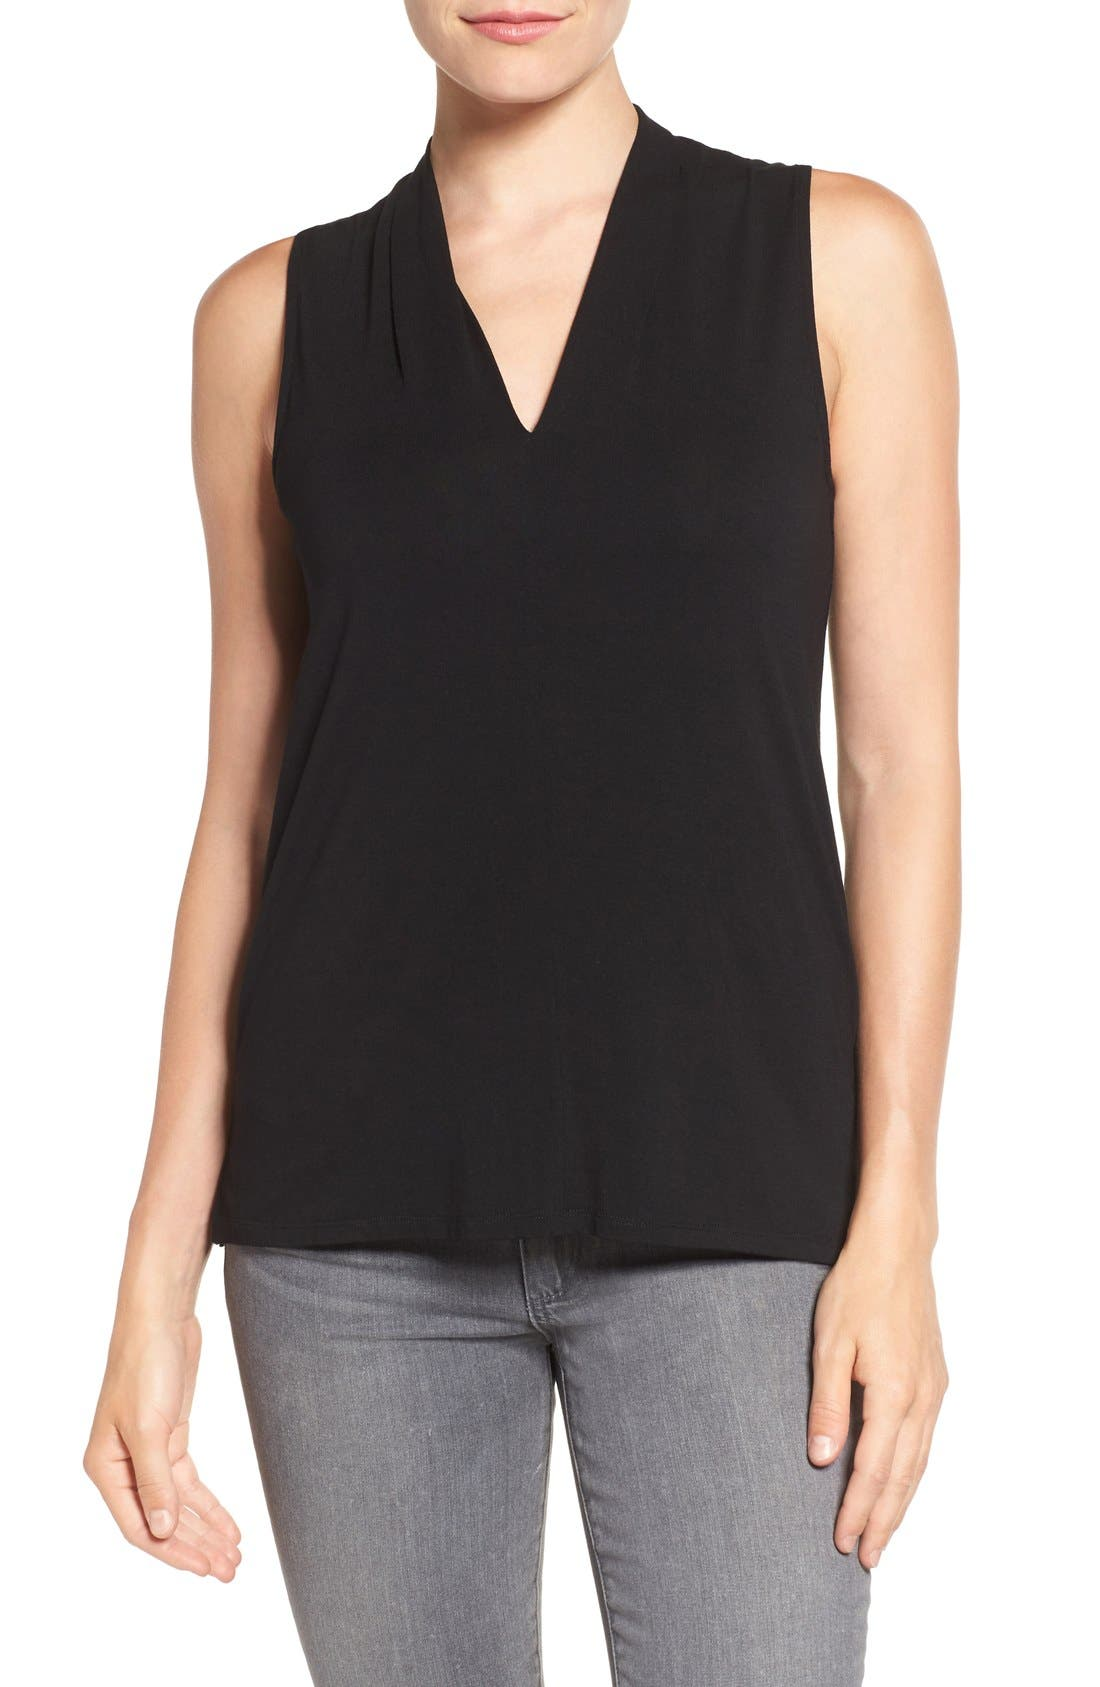 Alternate Image 1 Selected - Vince Camuto Sleeveless V-Neck Top